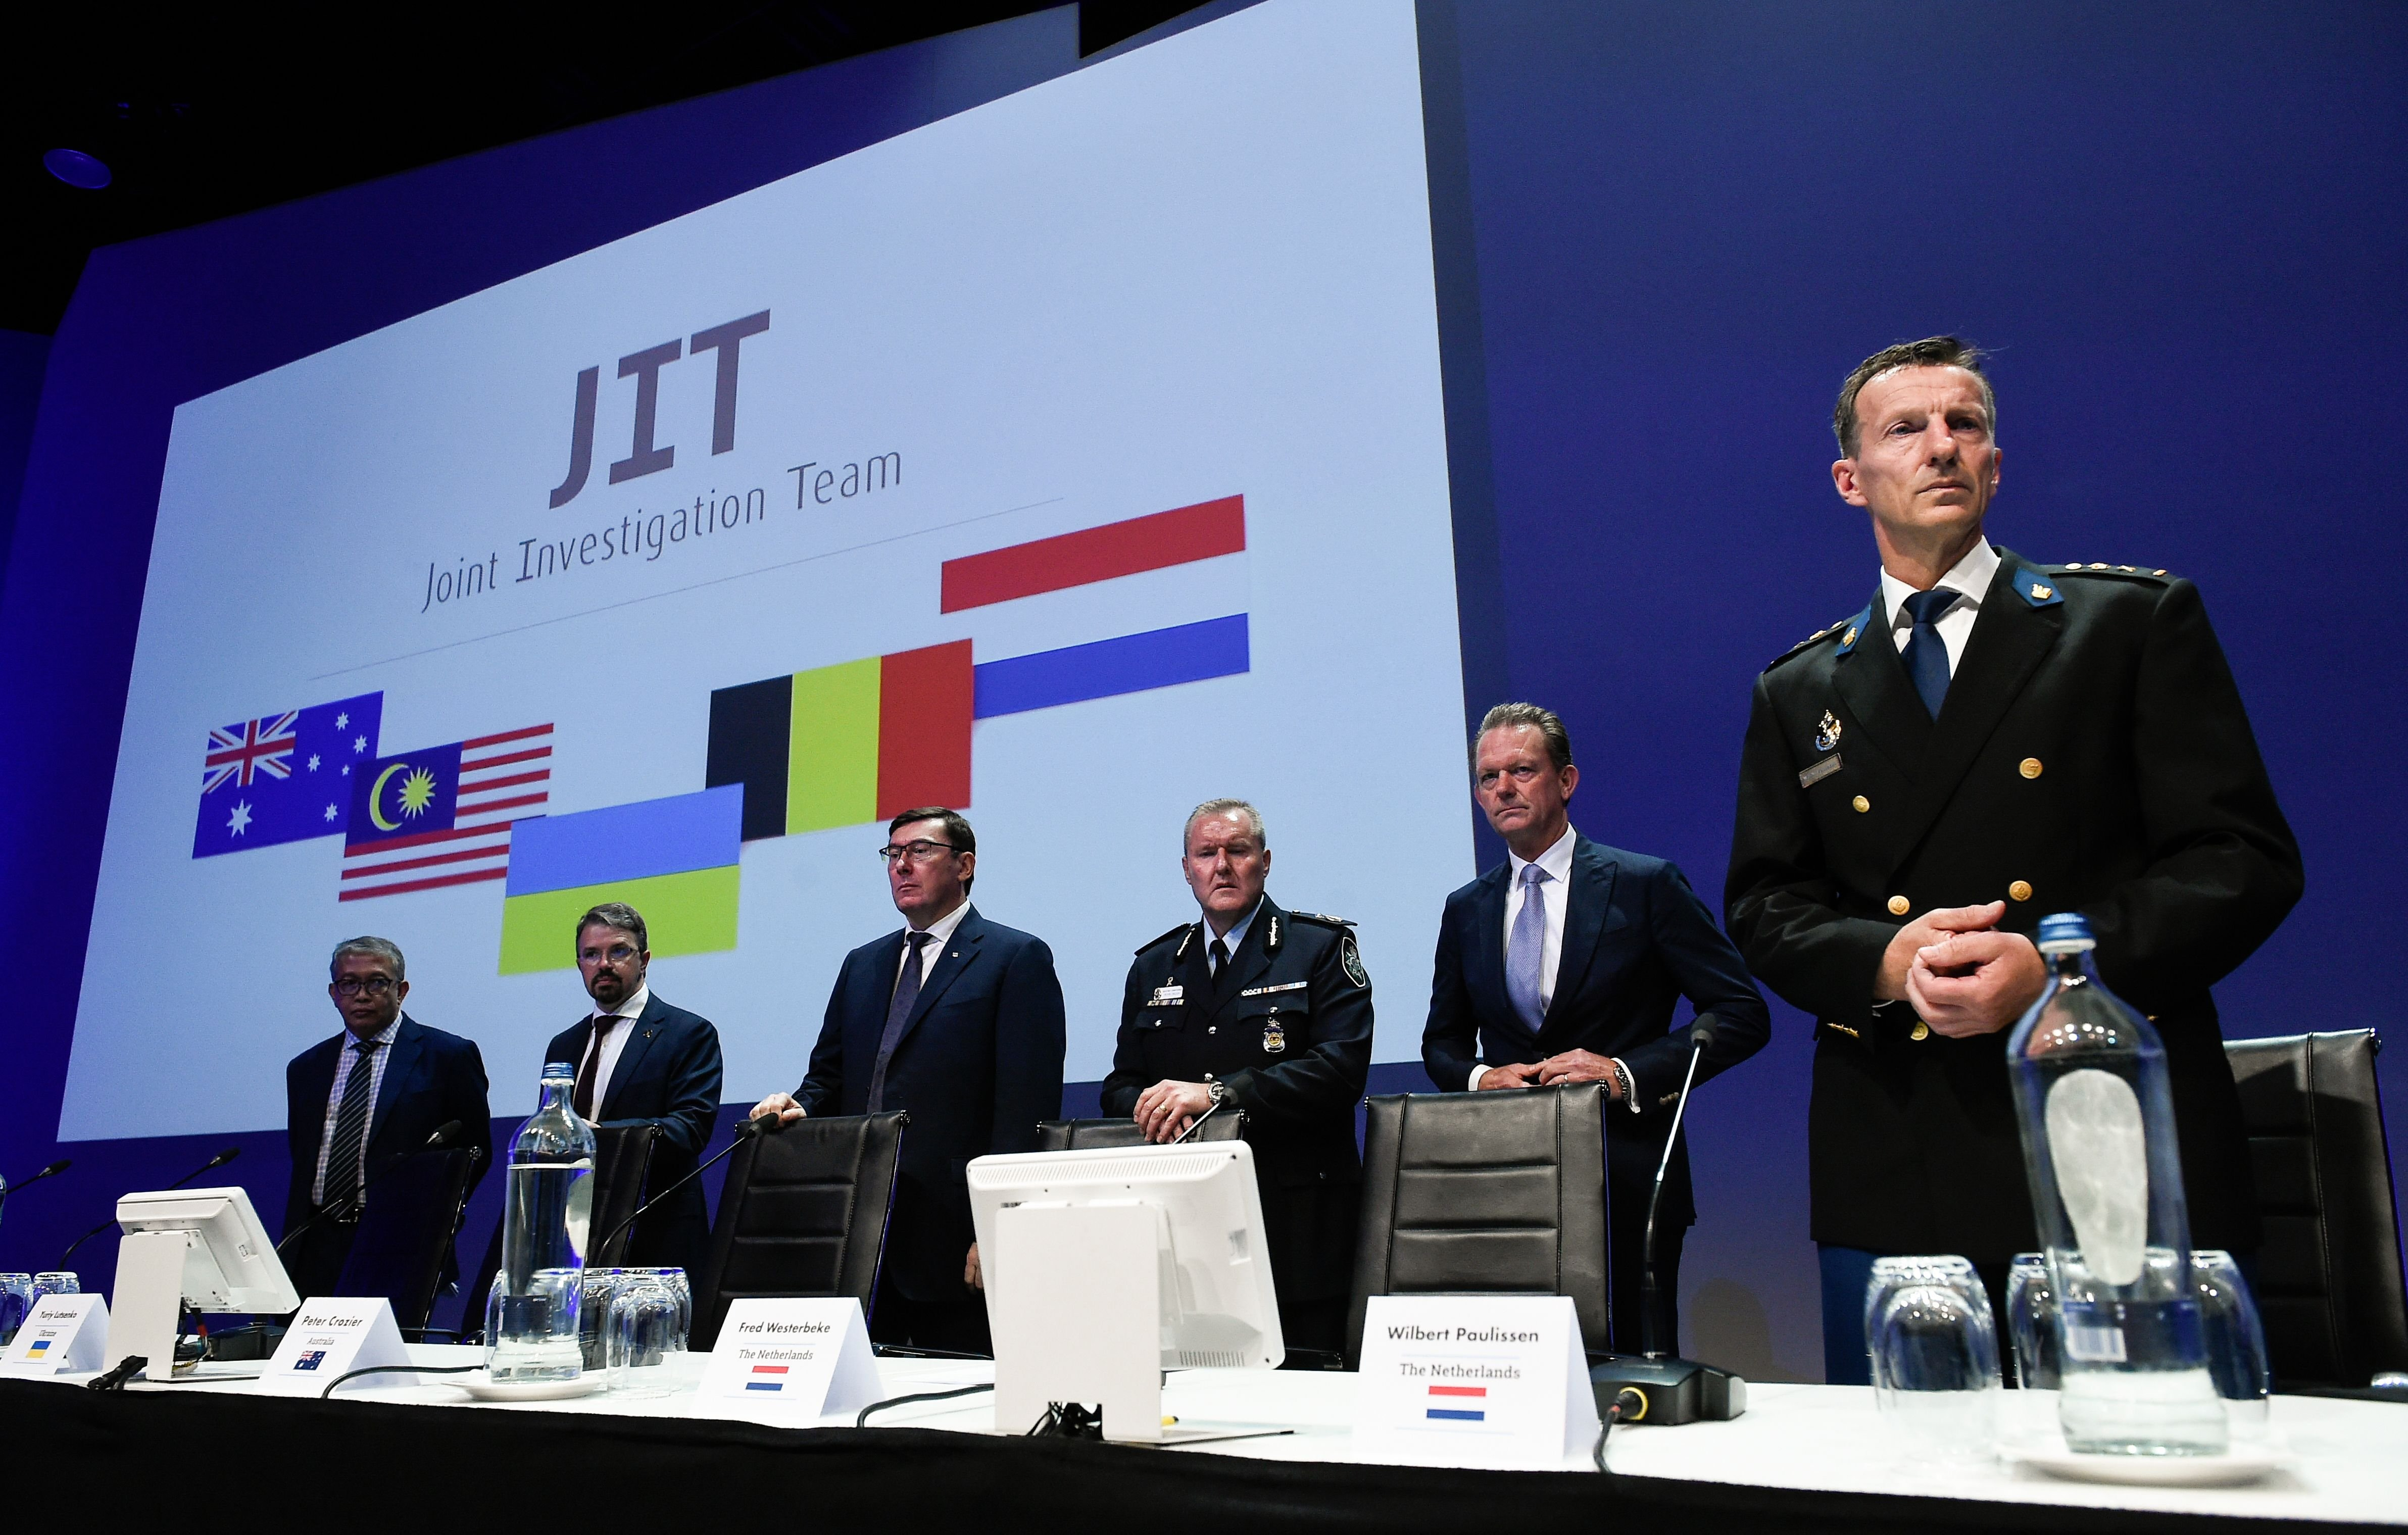 Members of the Joint Investigation Team hold a press conference on June 19, 2019 in Nieuwegein, on the ongoing investigation of the Malaysia Airlines MH17 crash in 2014. (JOHN THYS/AFP/Getty Images)